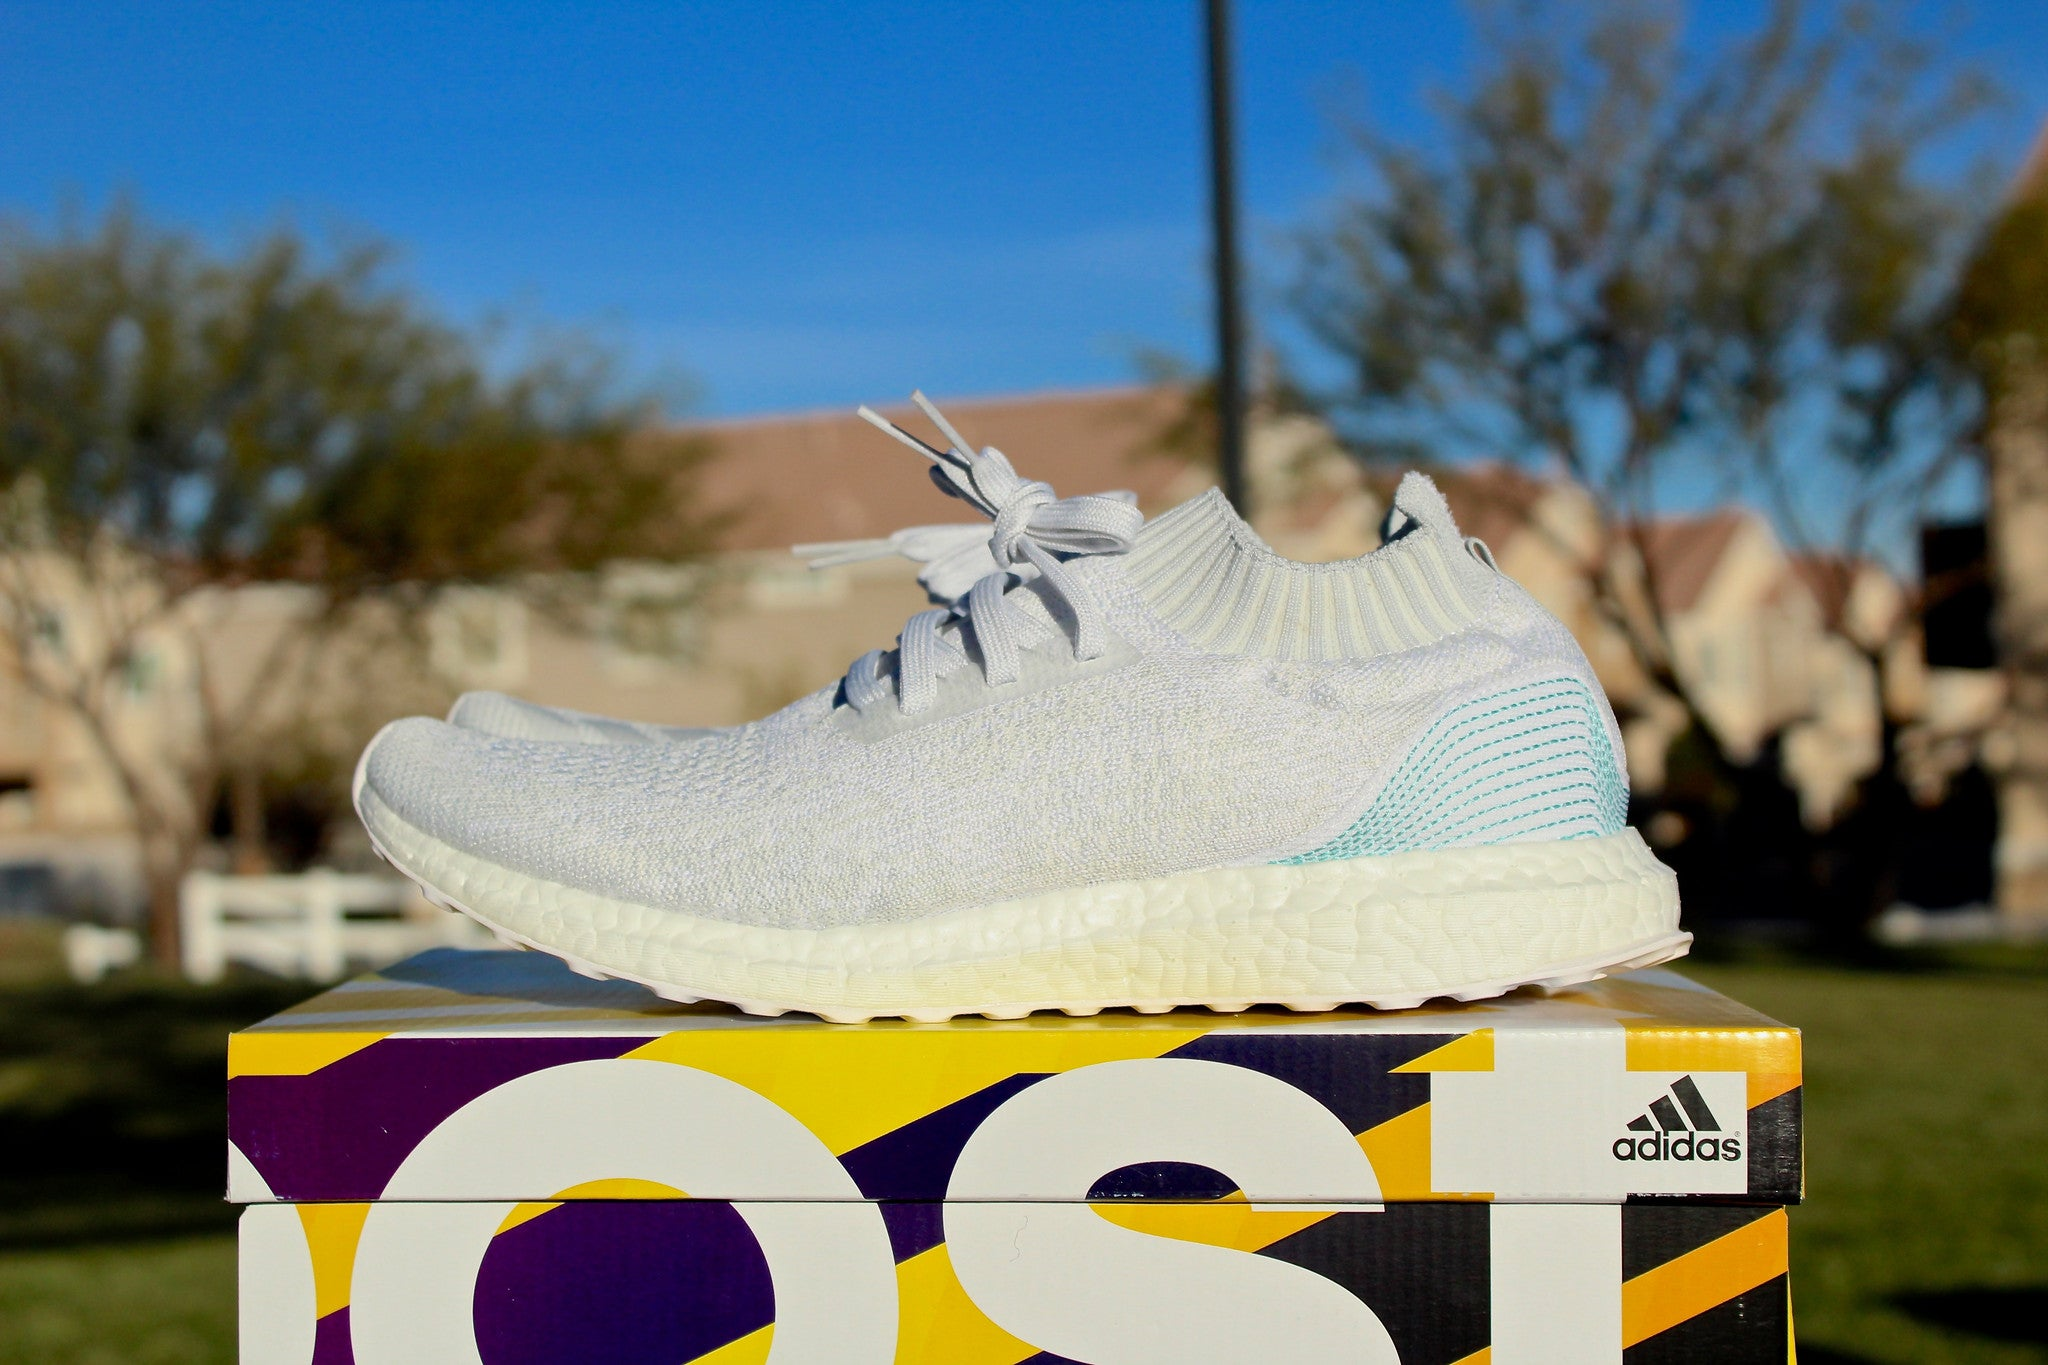 Adidas Ultra Boost Uncaged LTD (Parley)